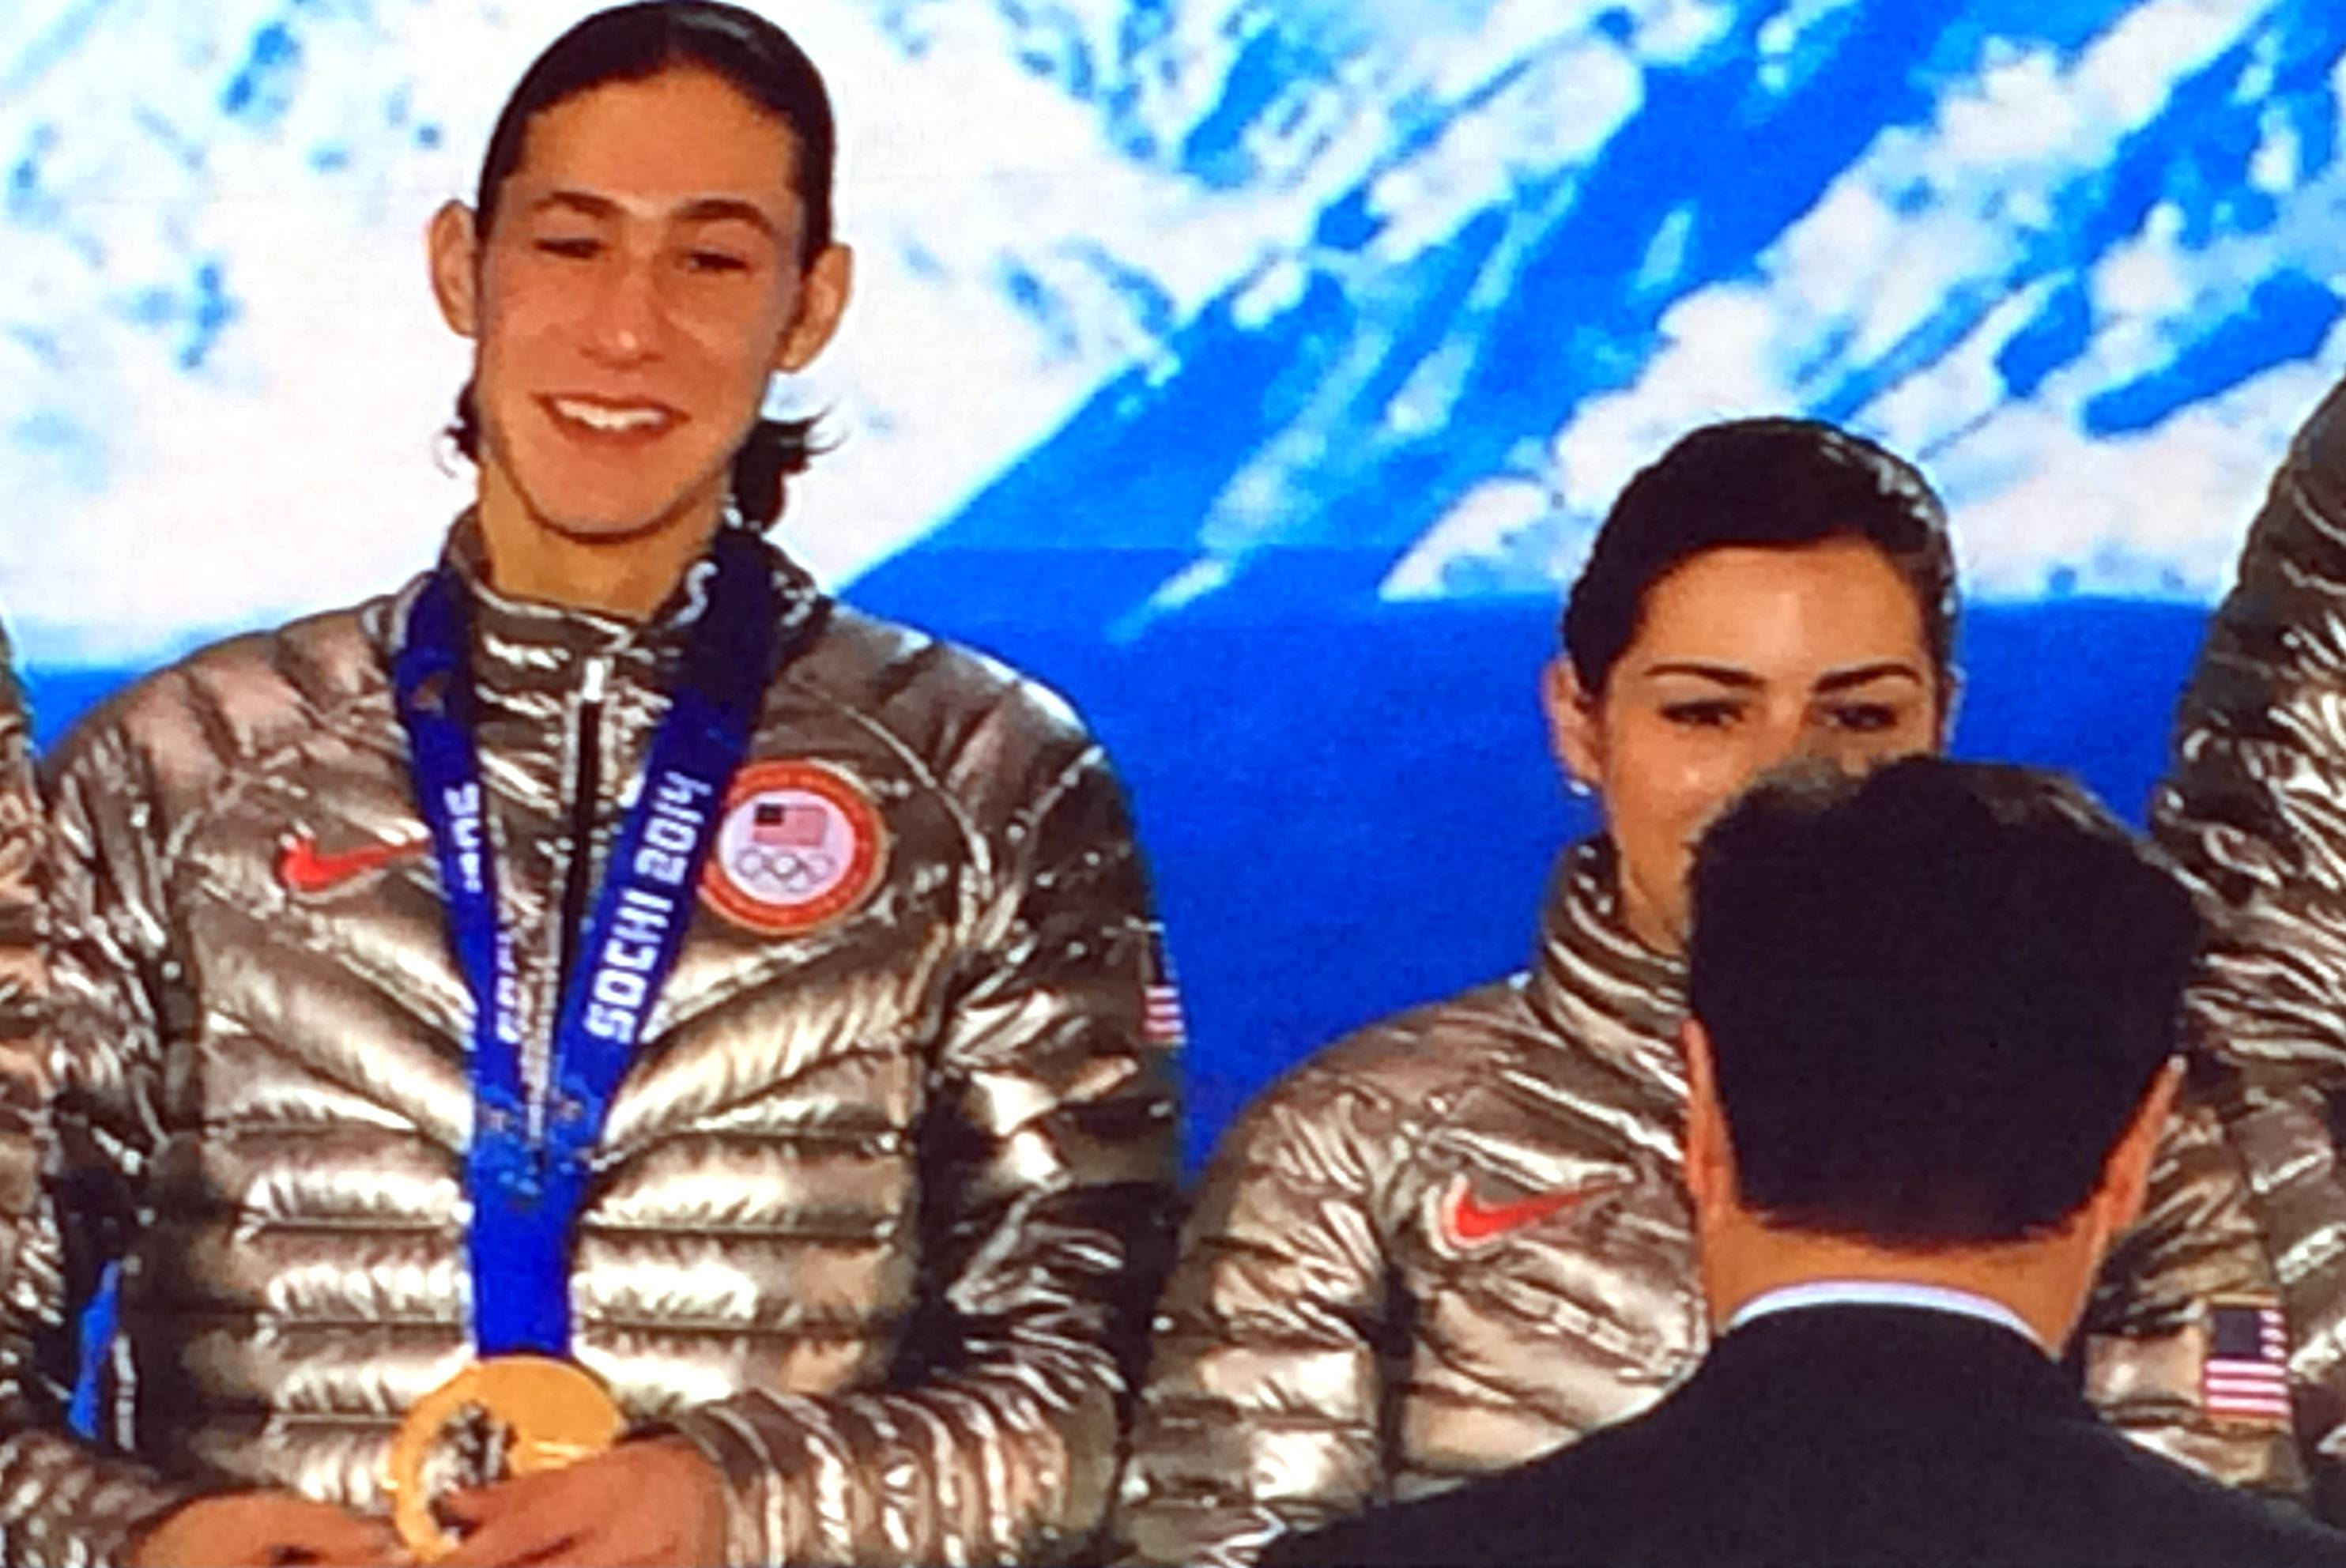 Photo of a video monitor shows Highland Park figure skater Jason Brown receiving his bronze medal this month at the Sochi Winter Olympics.